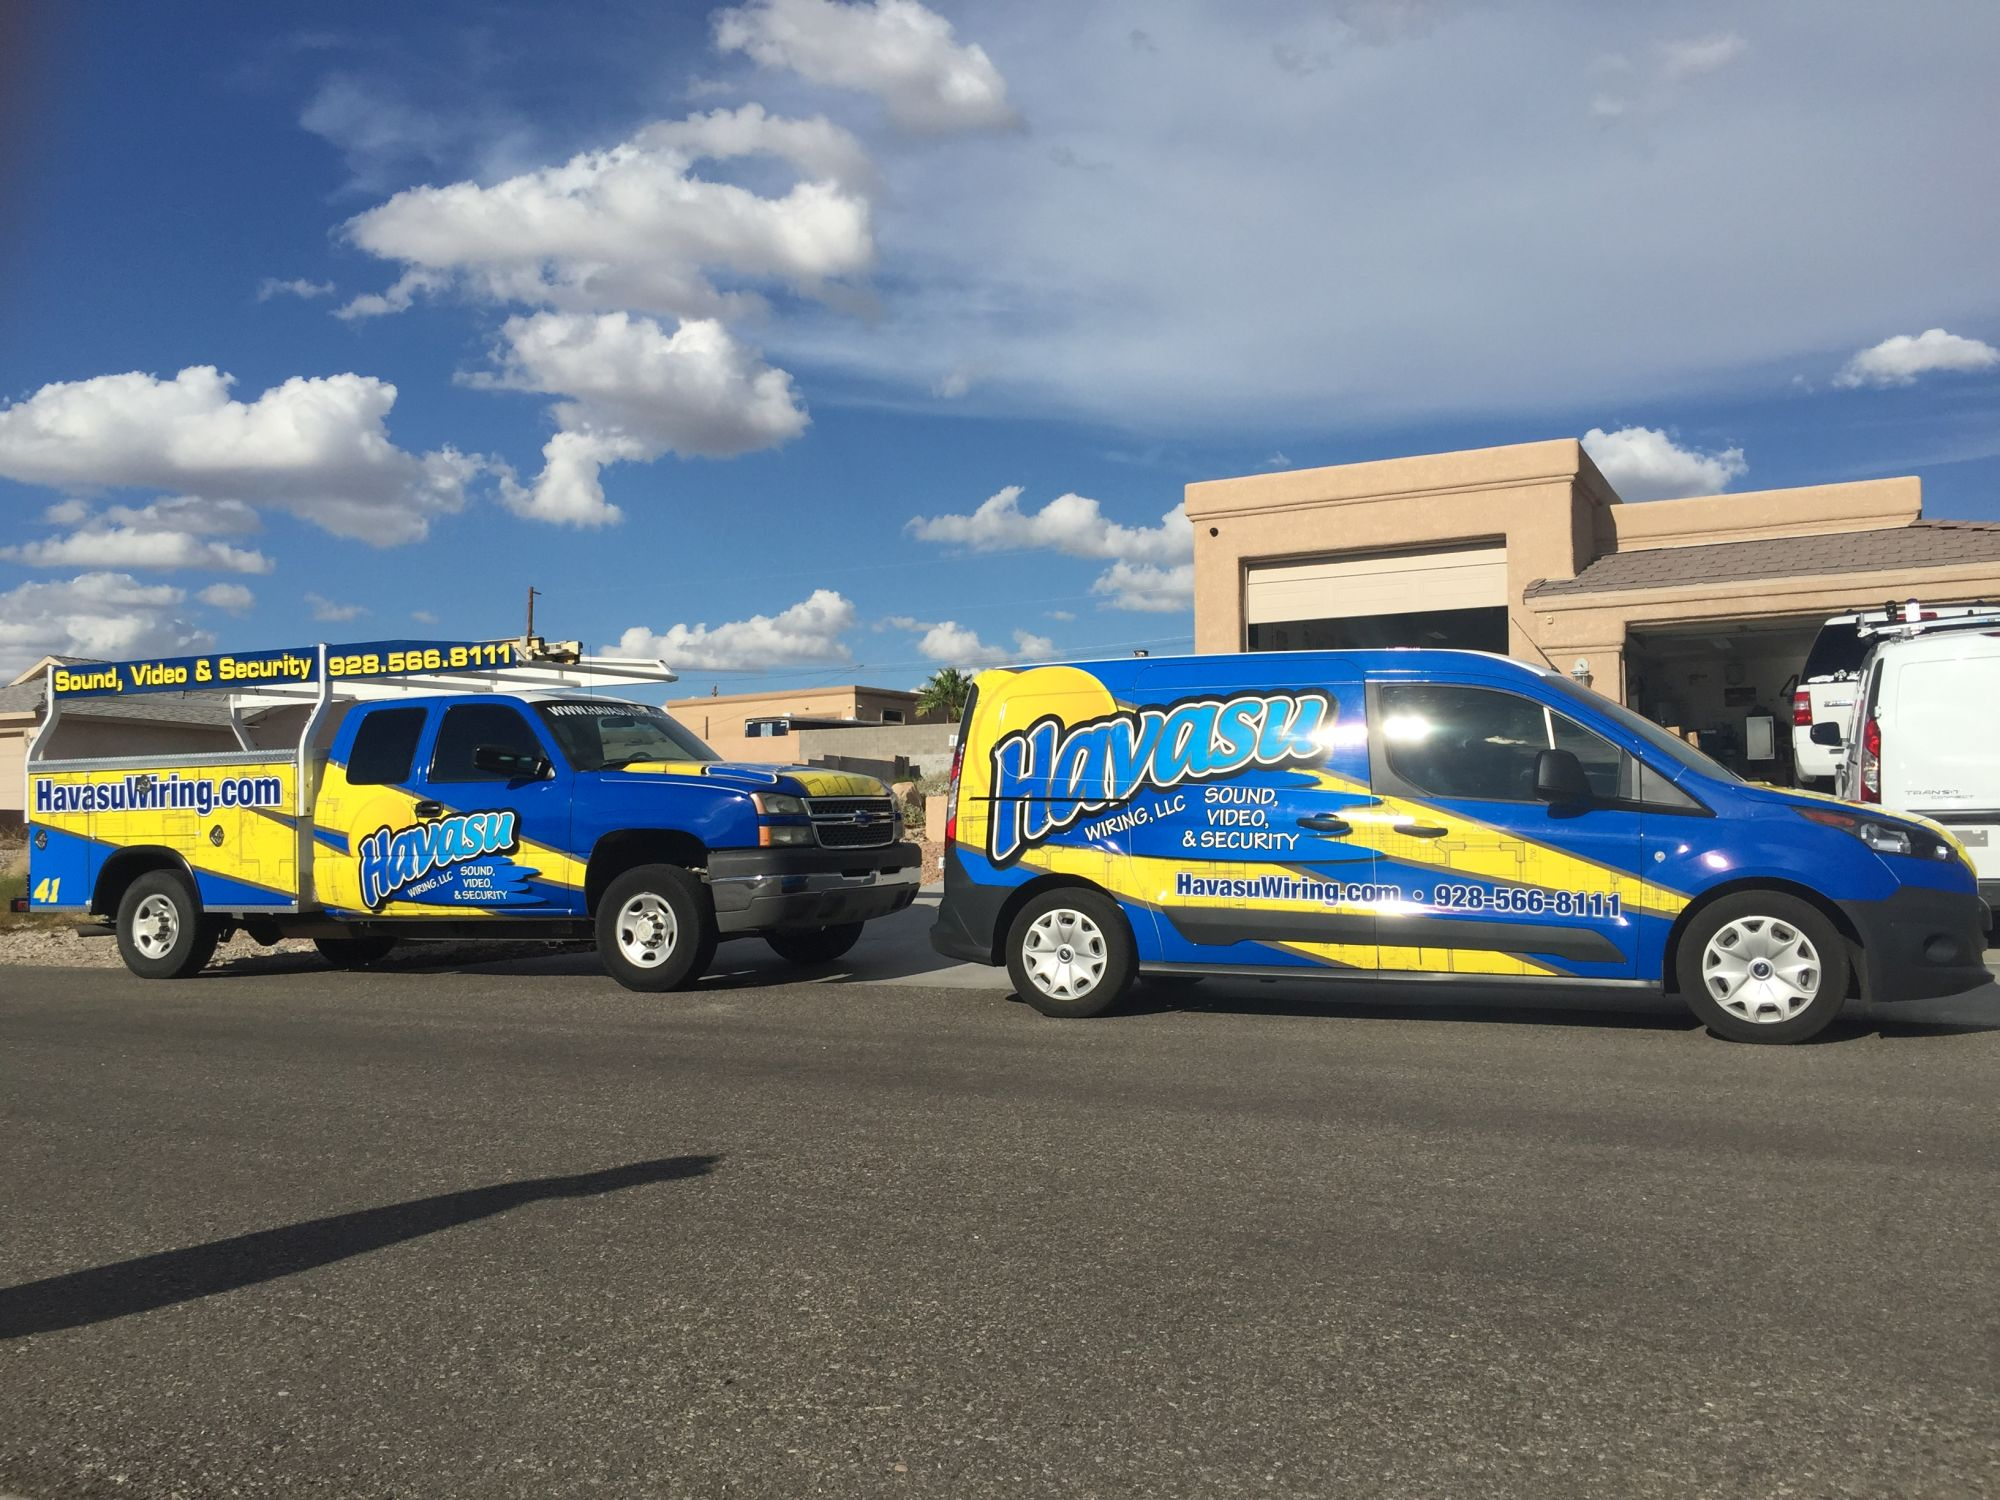 Havasu Wiring, smart homes, sound wiring, security cameras and all ...